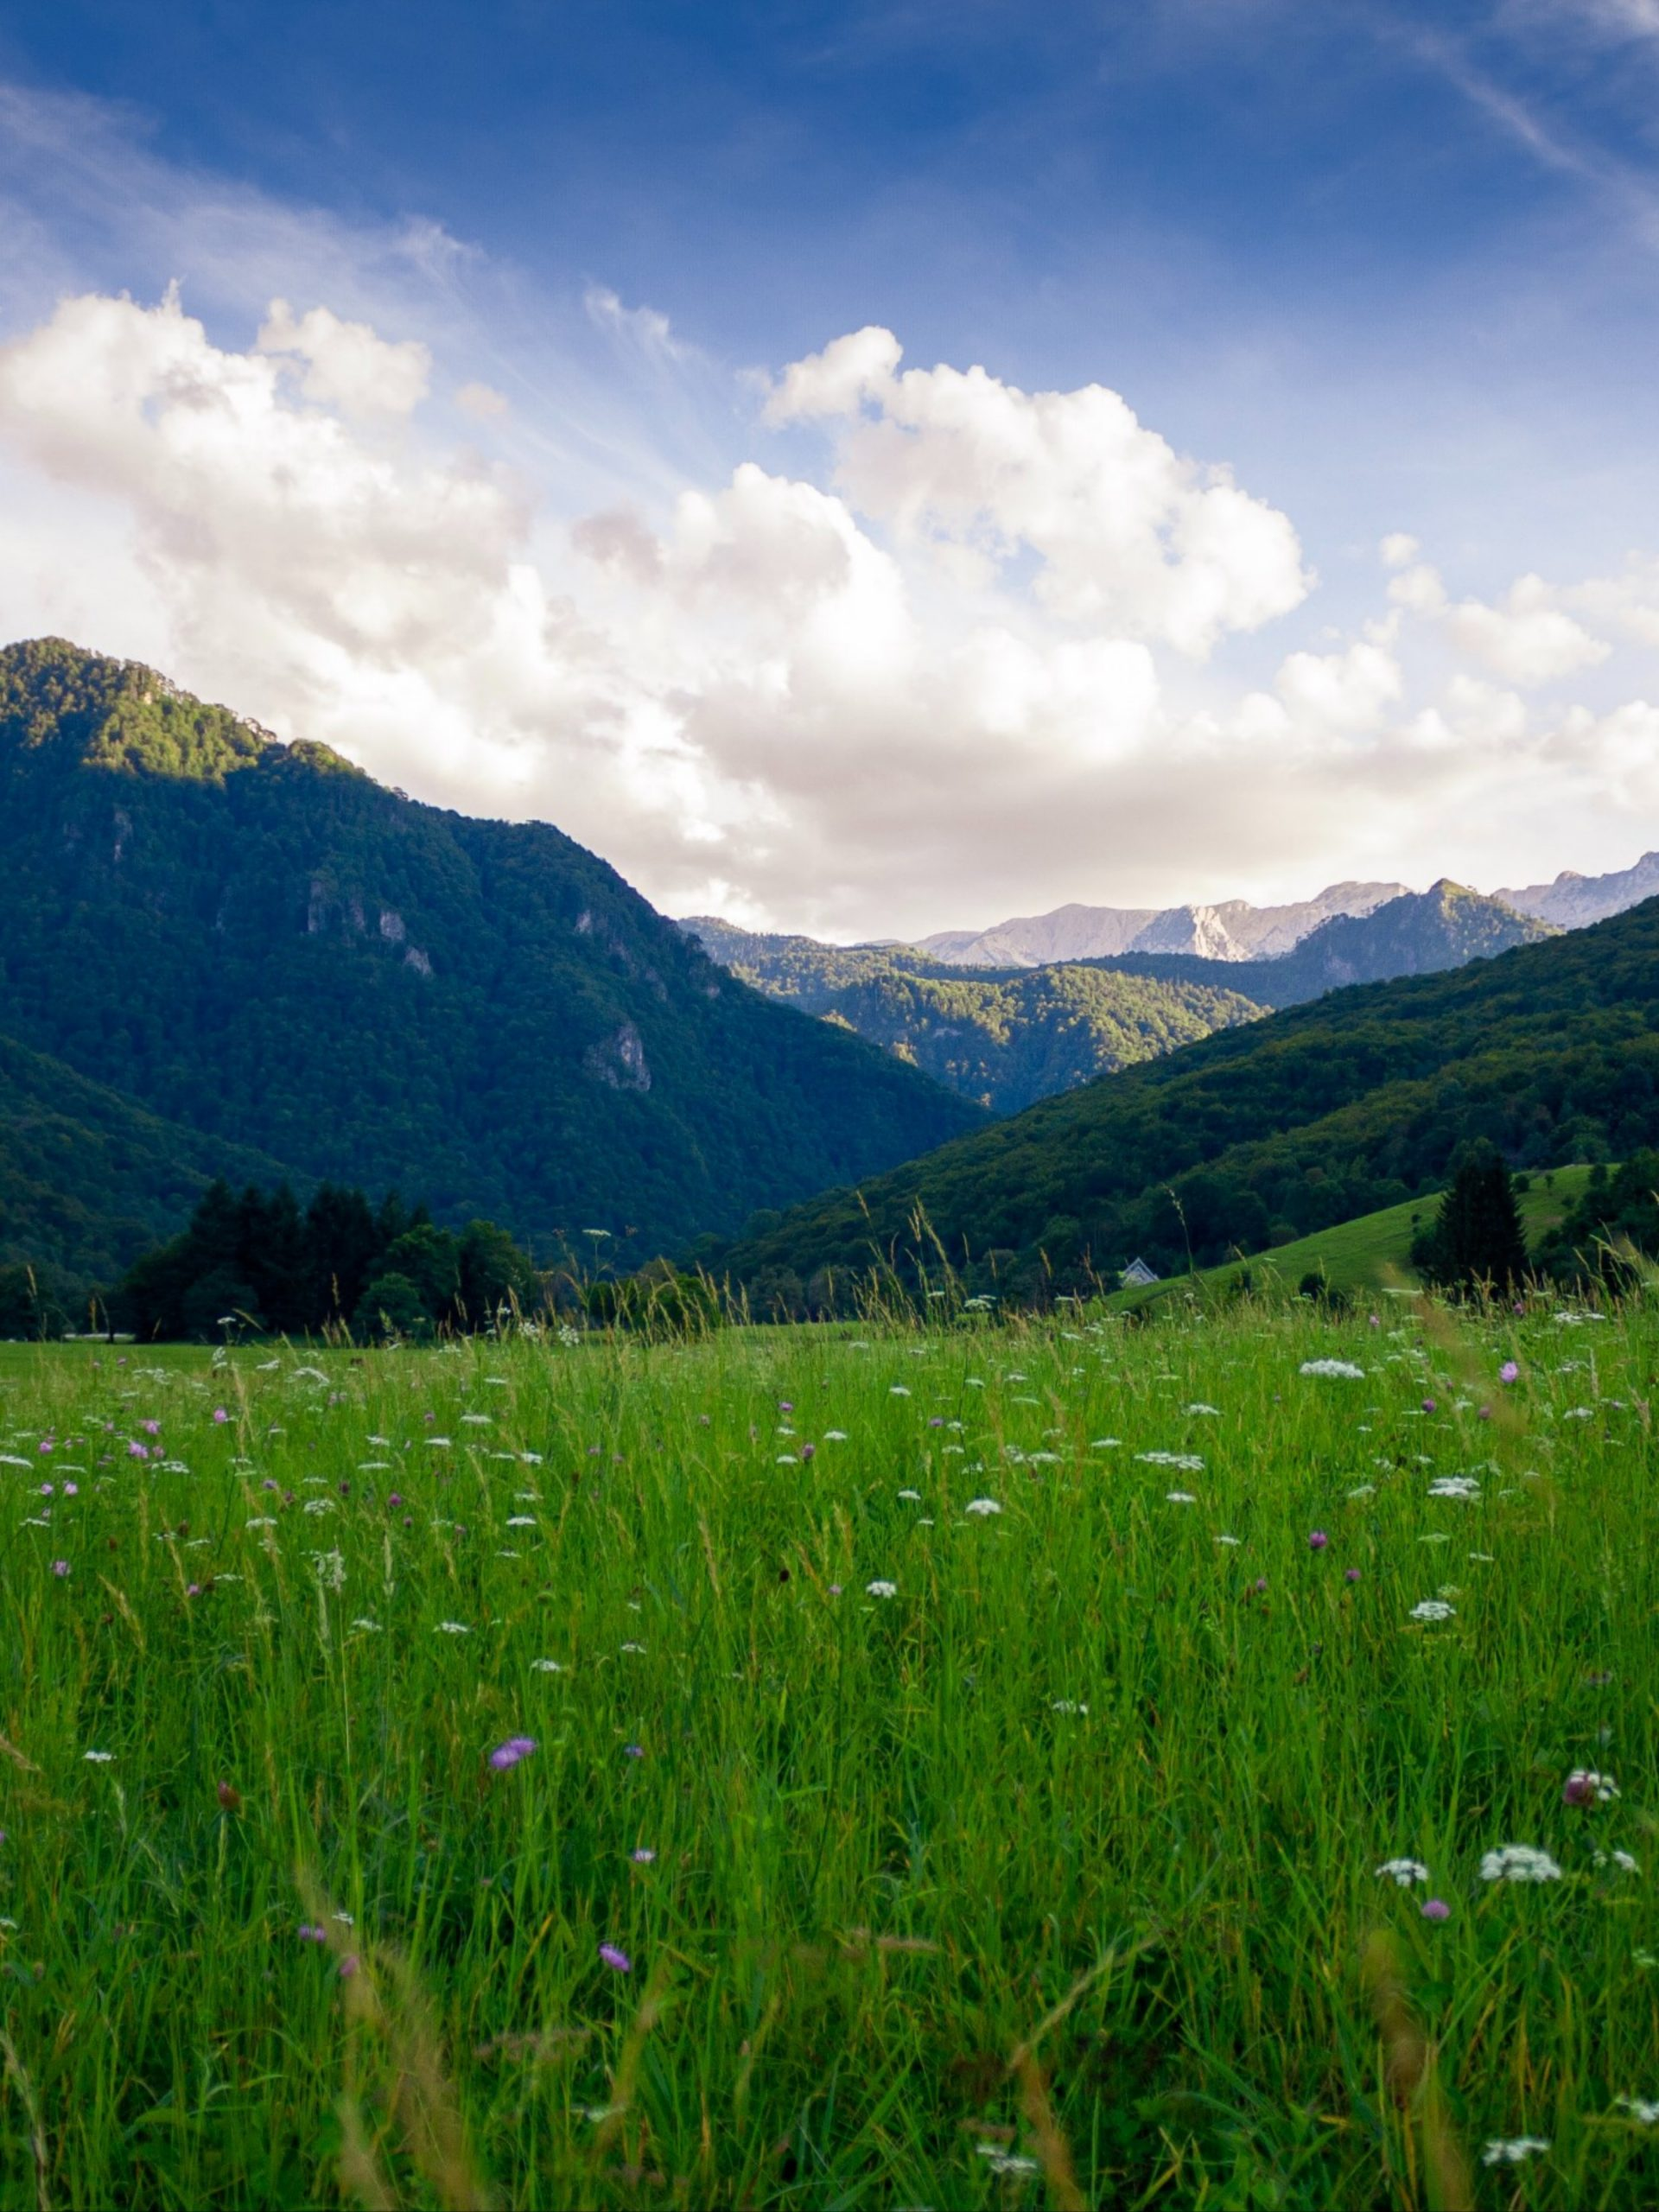 Wild grass and mountains